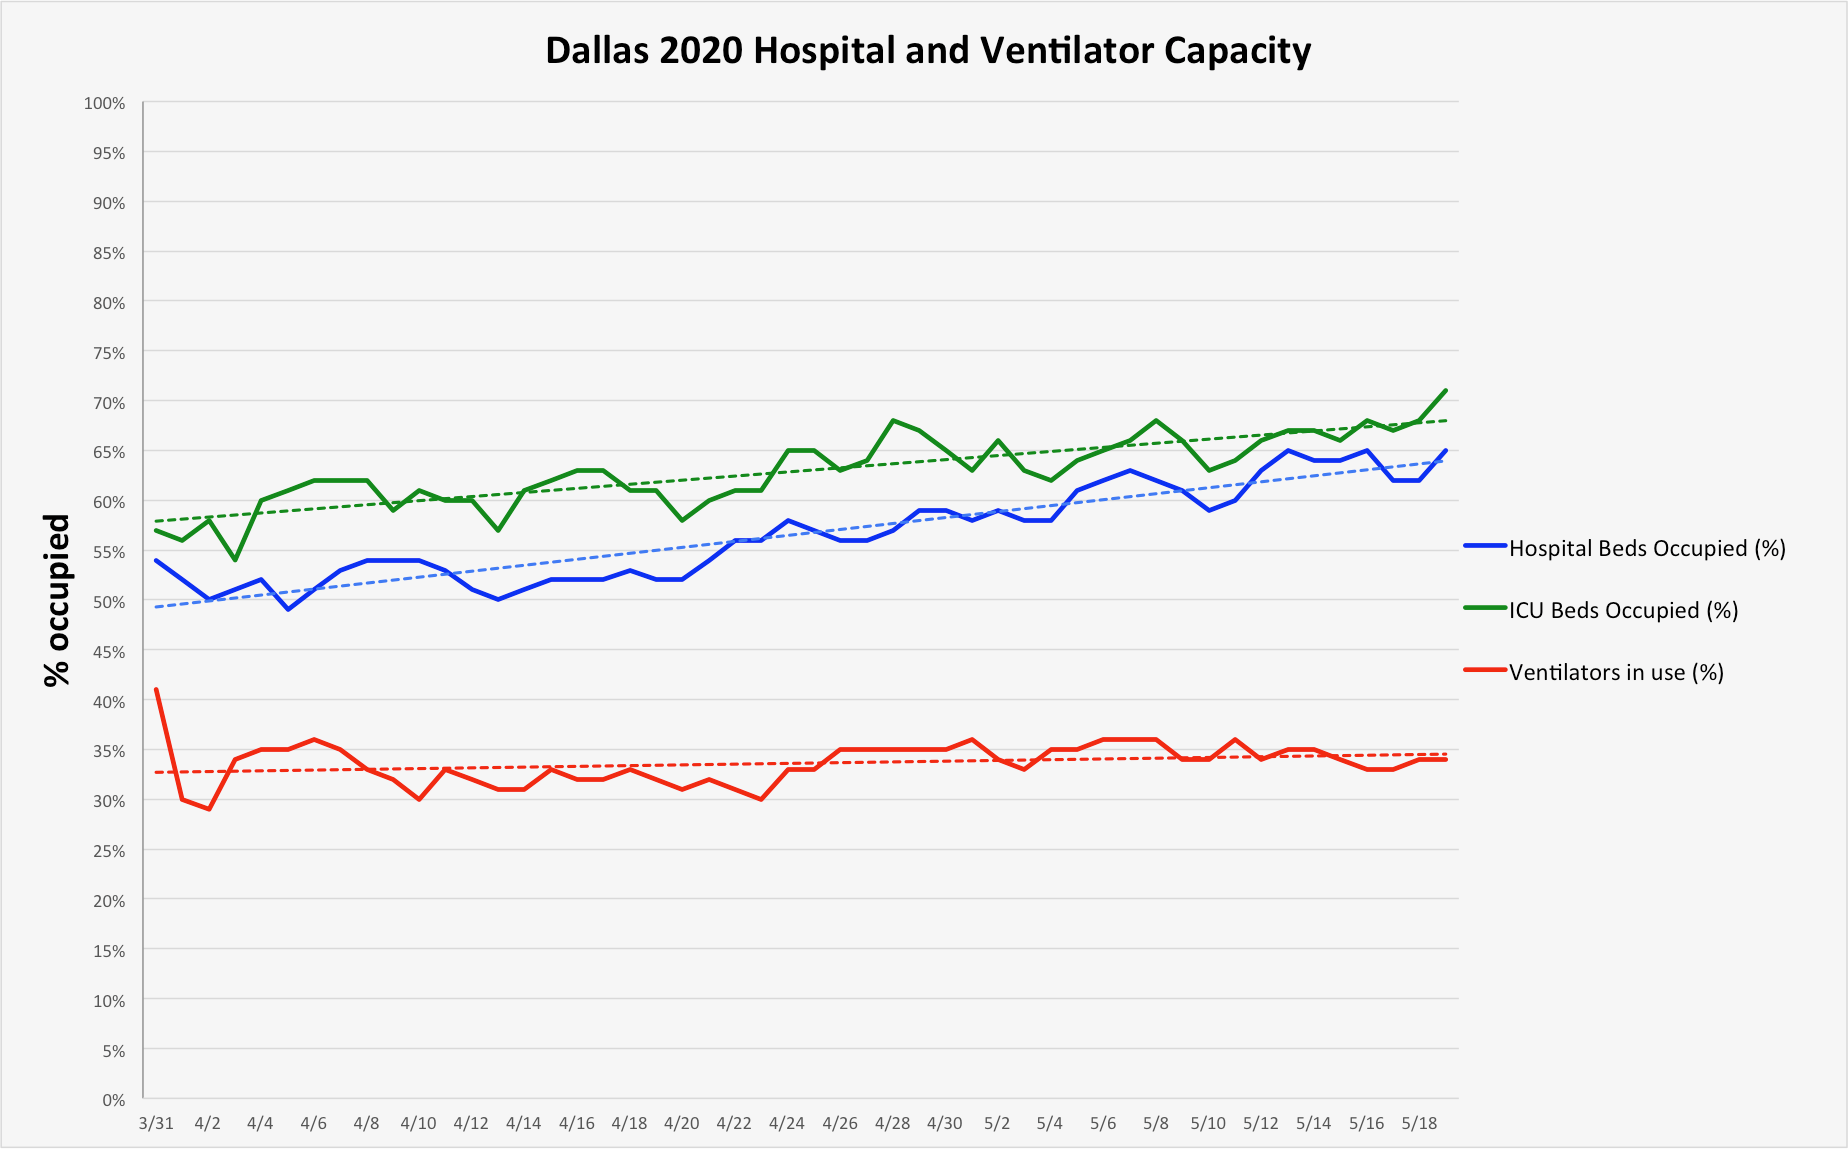 City of Dallas COVID-19 Update: May 20 2